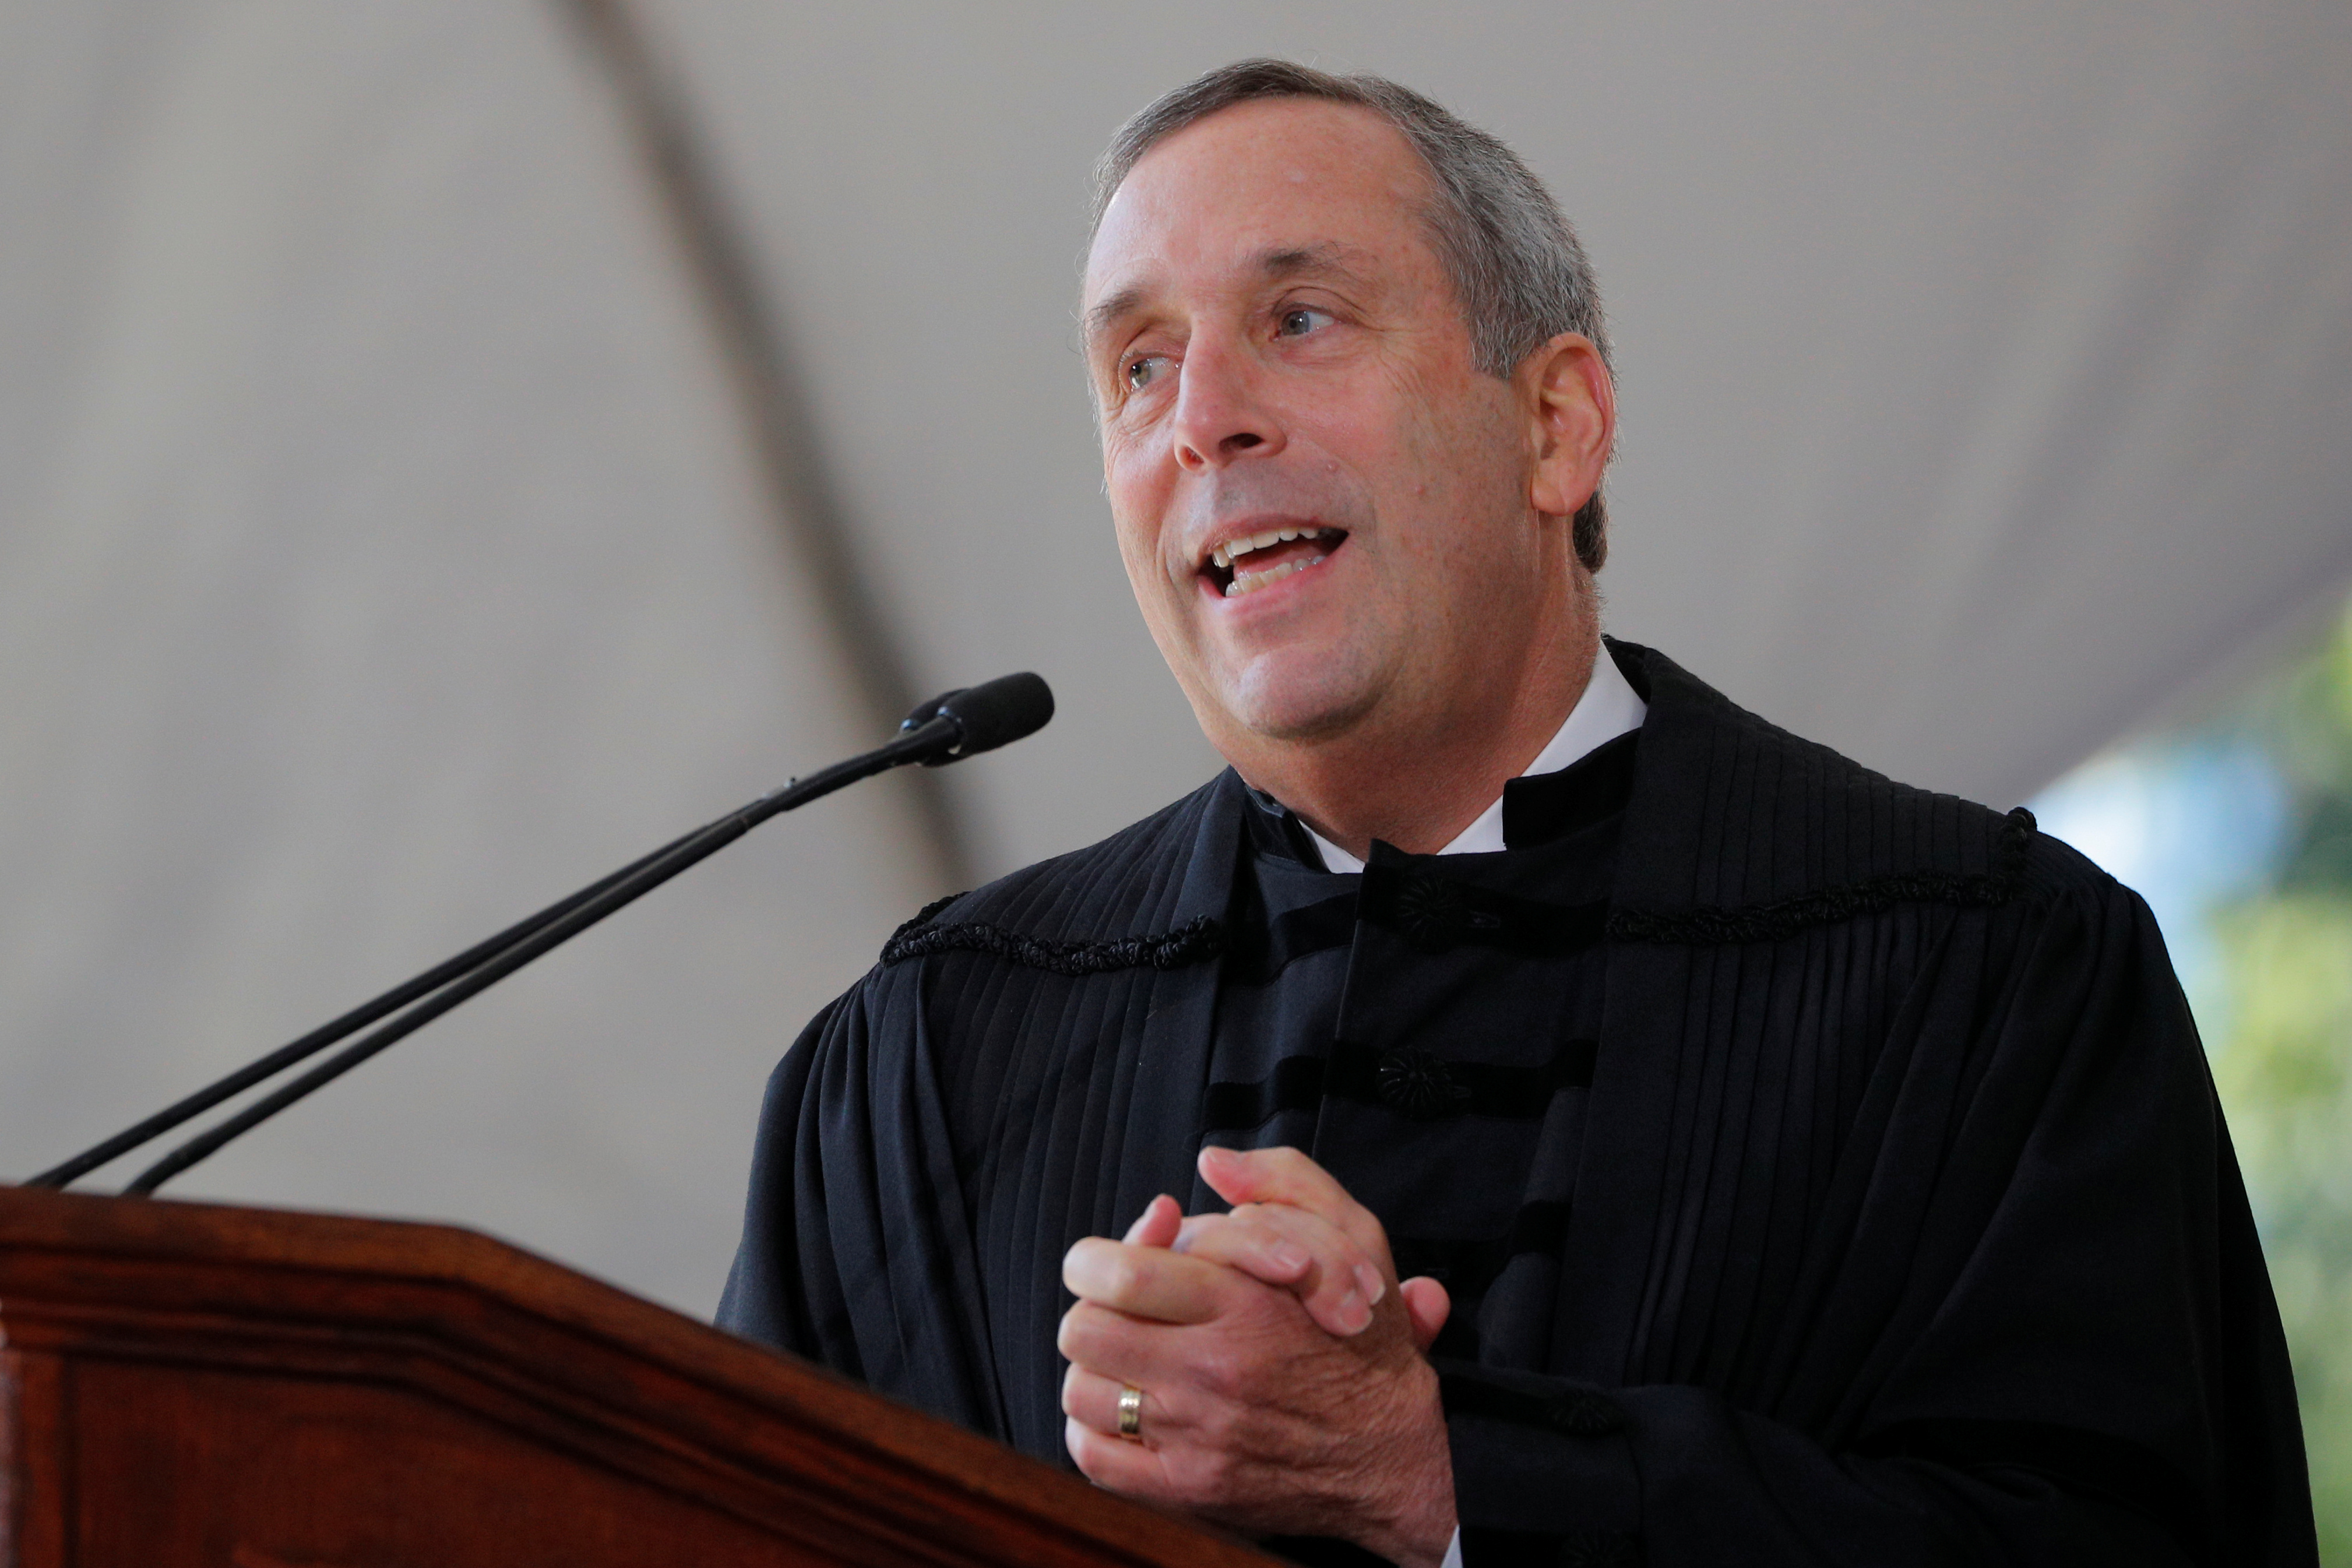 Lawrence Bacow speaks during his inauguration as the 29th President of Harvard University in Cambridge, Massachusetts, U.S., October 5, 2018. REUTERS/Brian Snyder